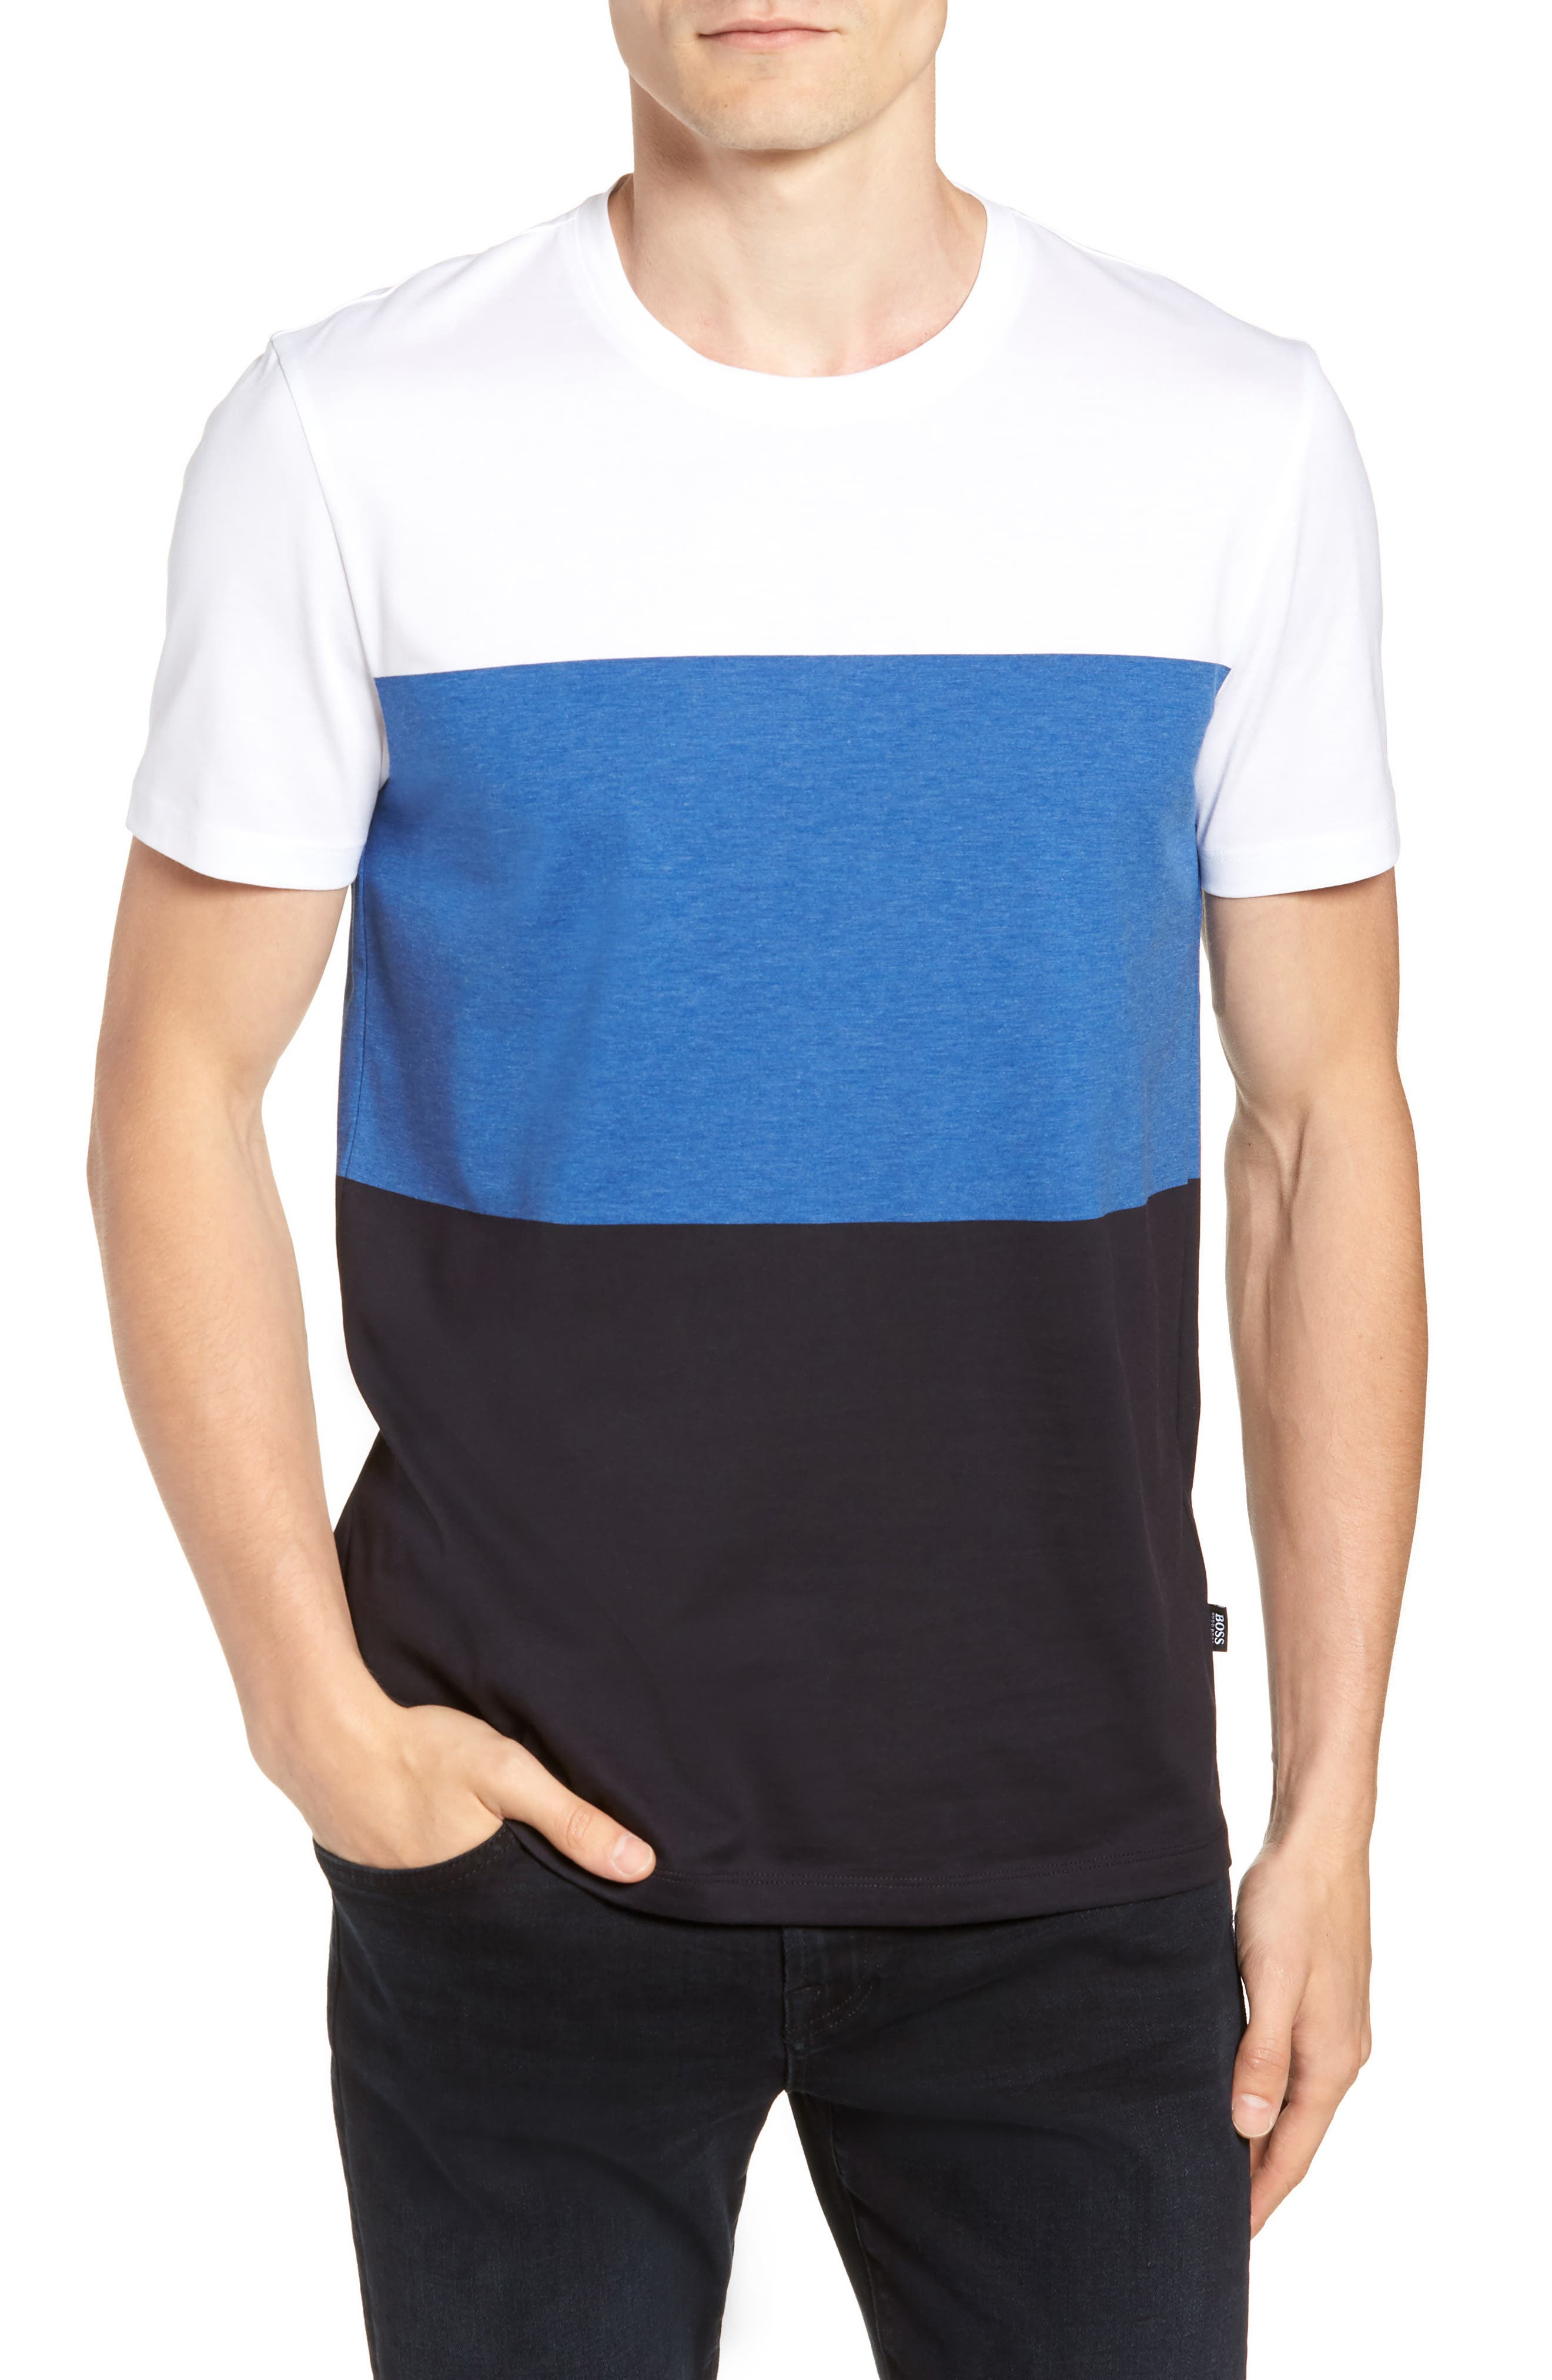 Tessler Colorblock Slim Fit T-Shirt,                             Main thumbnail 1, color,                             474